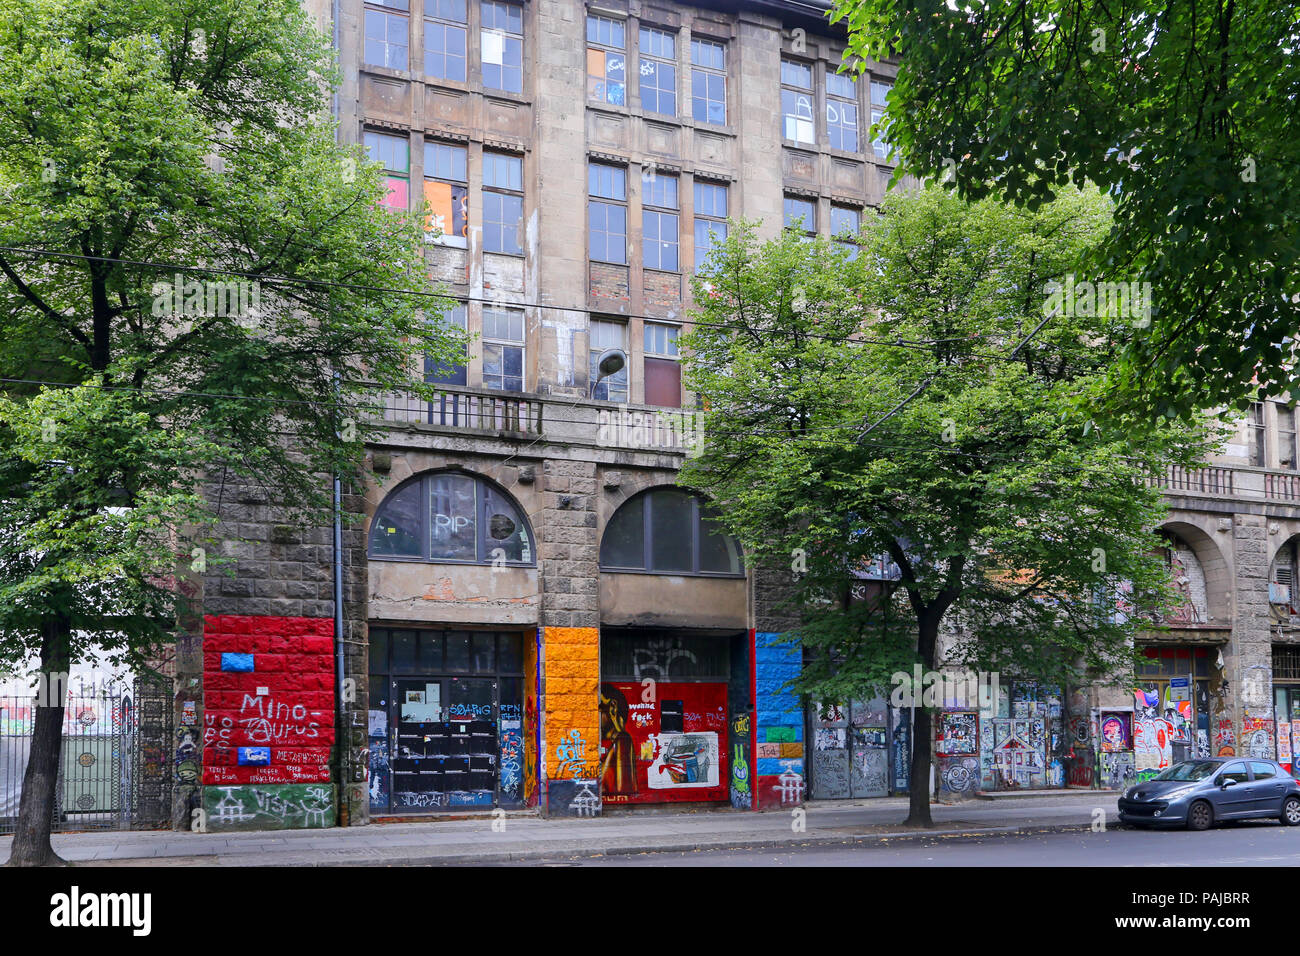 BERLIN, GERMANY - JULY 25: street view in Hackescher Market on July 25, 2015 in Berlin, Germany. - Stock Image